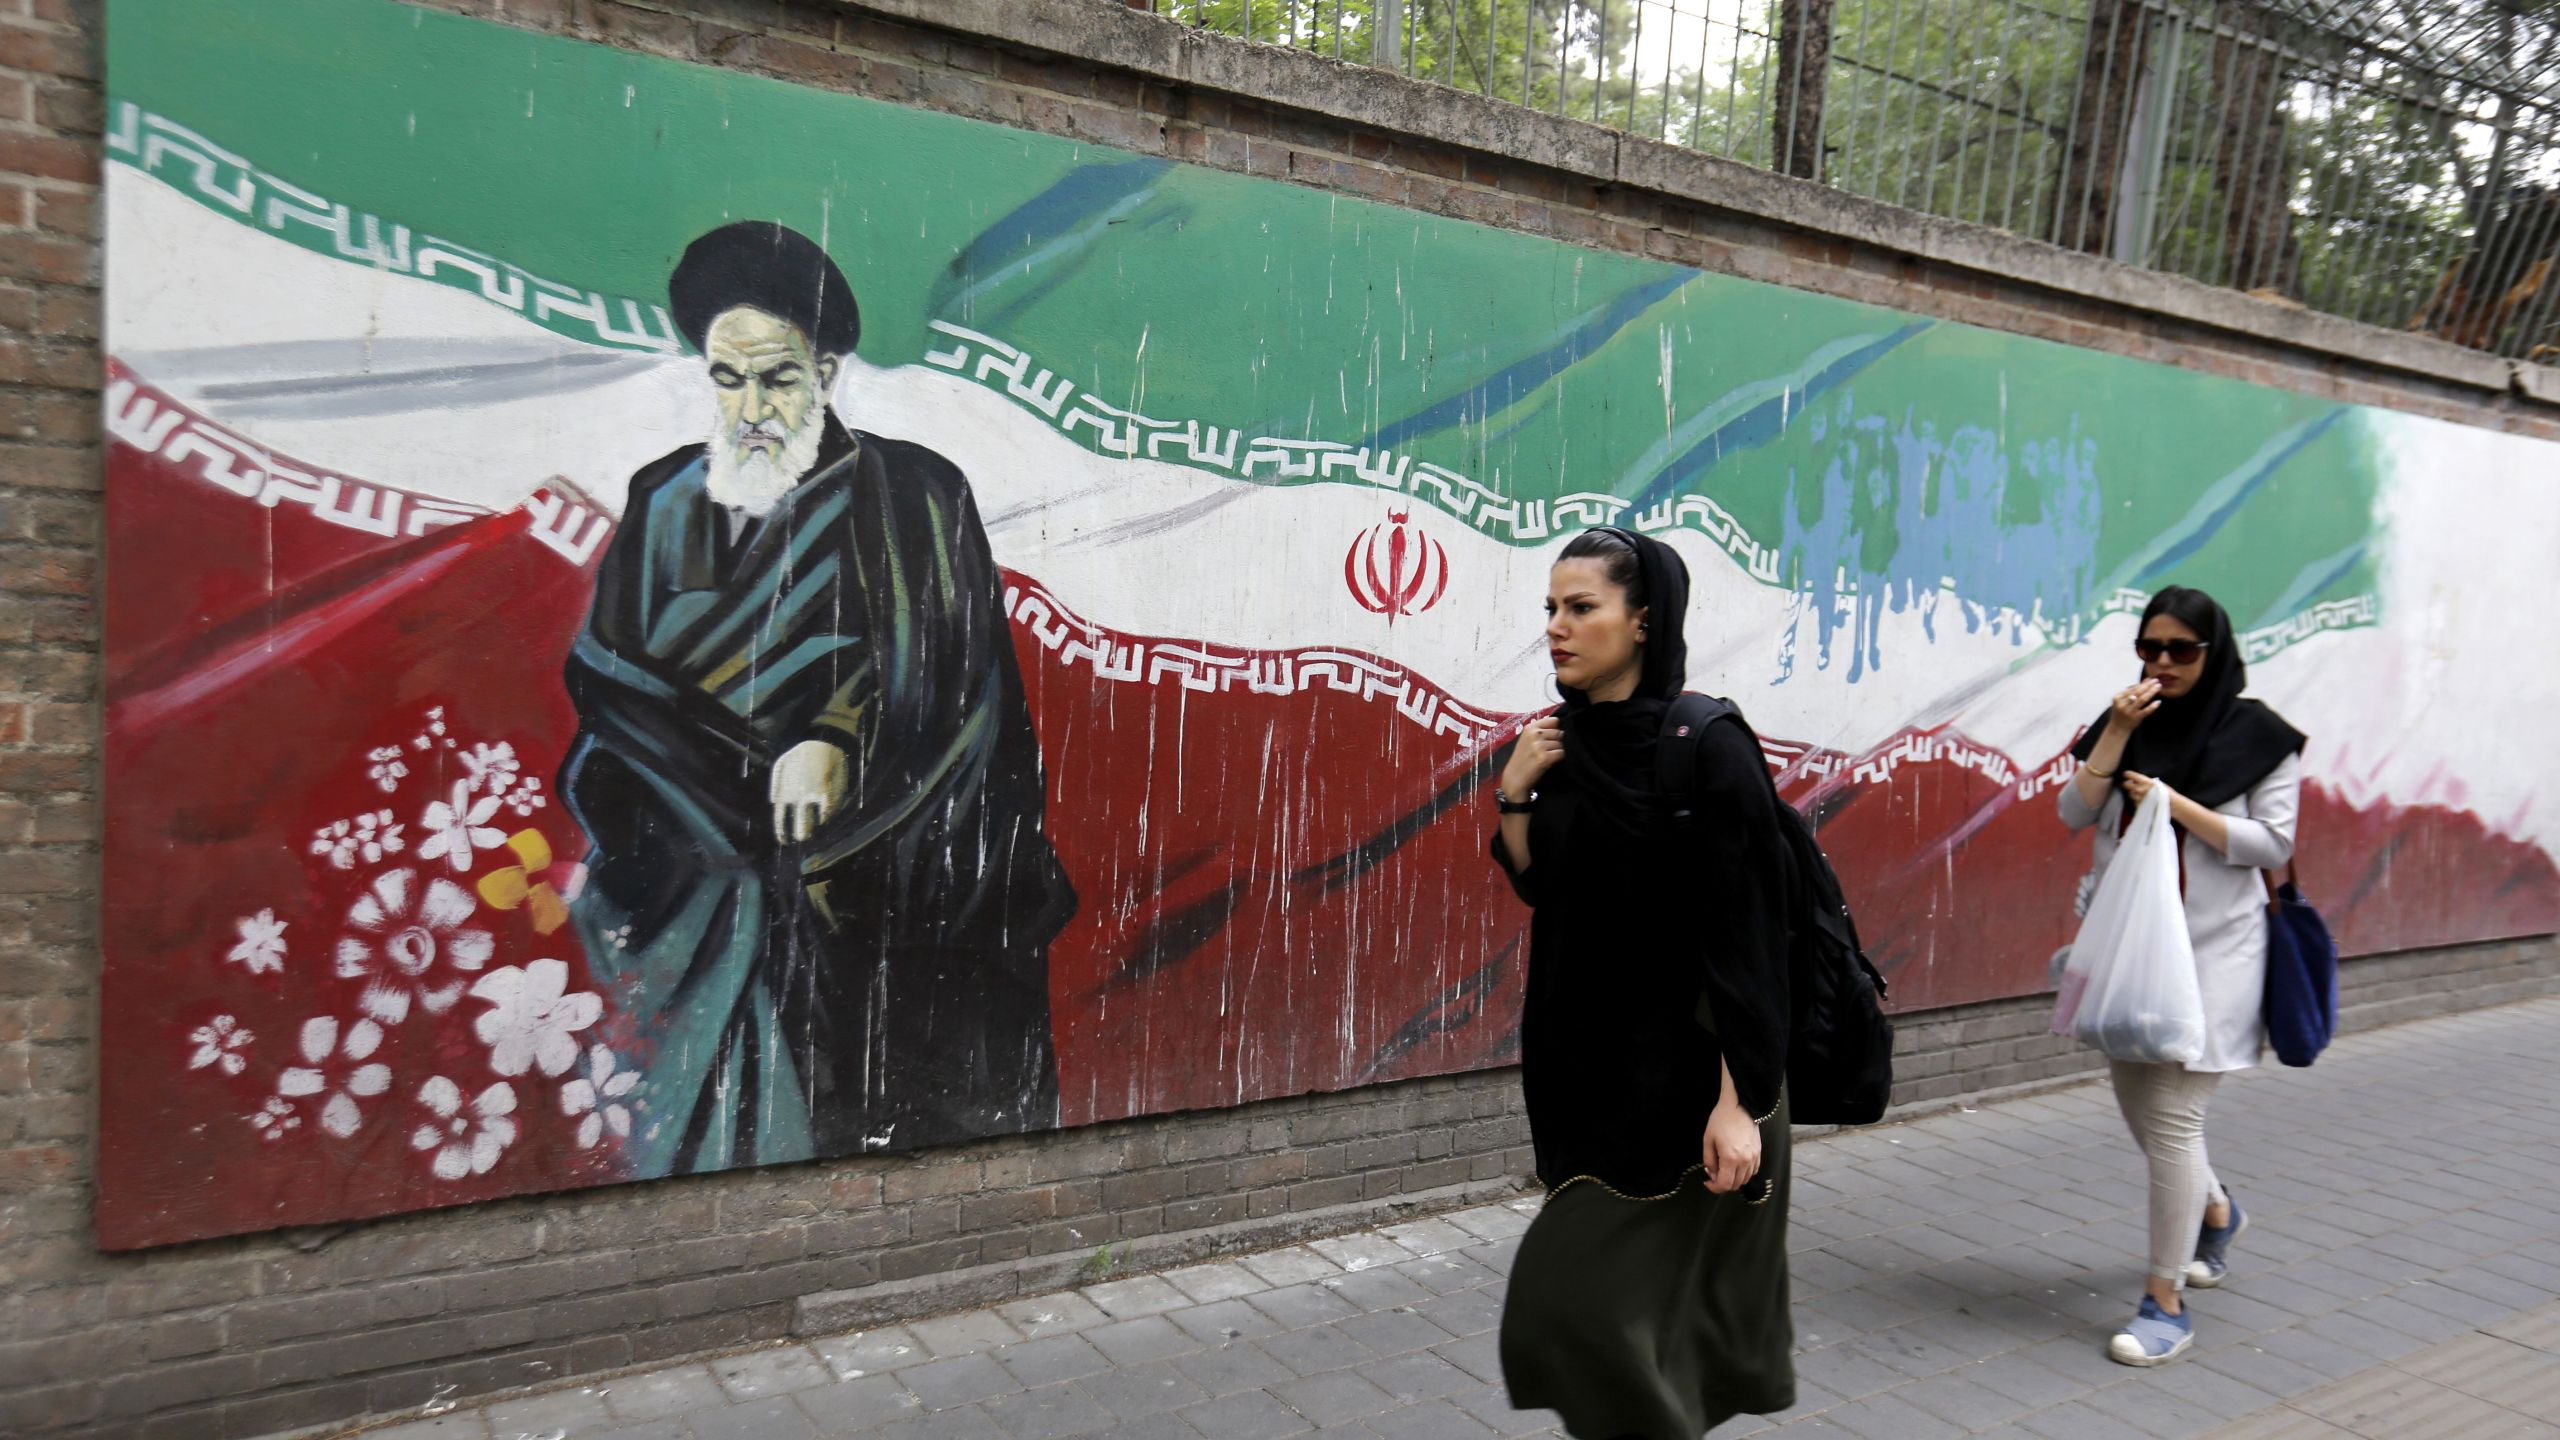 An Iranian woman walks past a mural on the wall of the former US embassy in the Iranian capital Tehran on May 8, 2018. (Credit: ATTA KENARE/AFP/Getty Images)